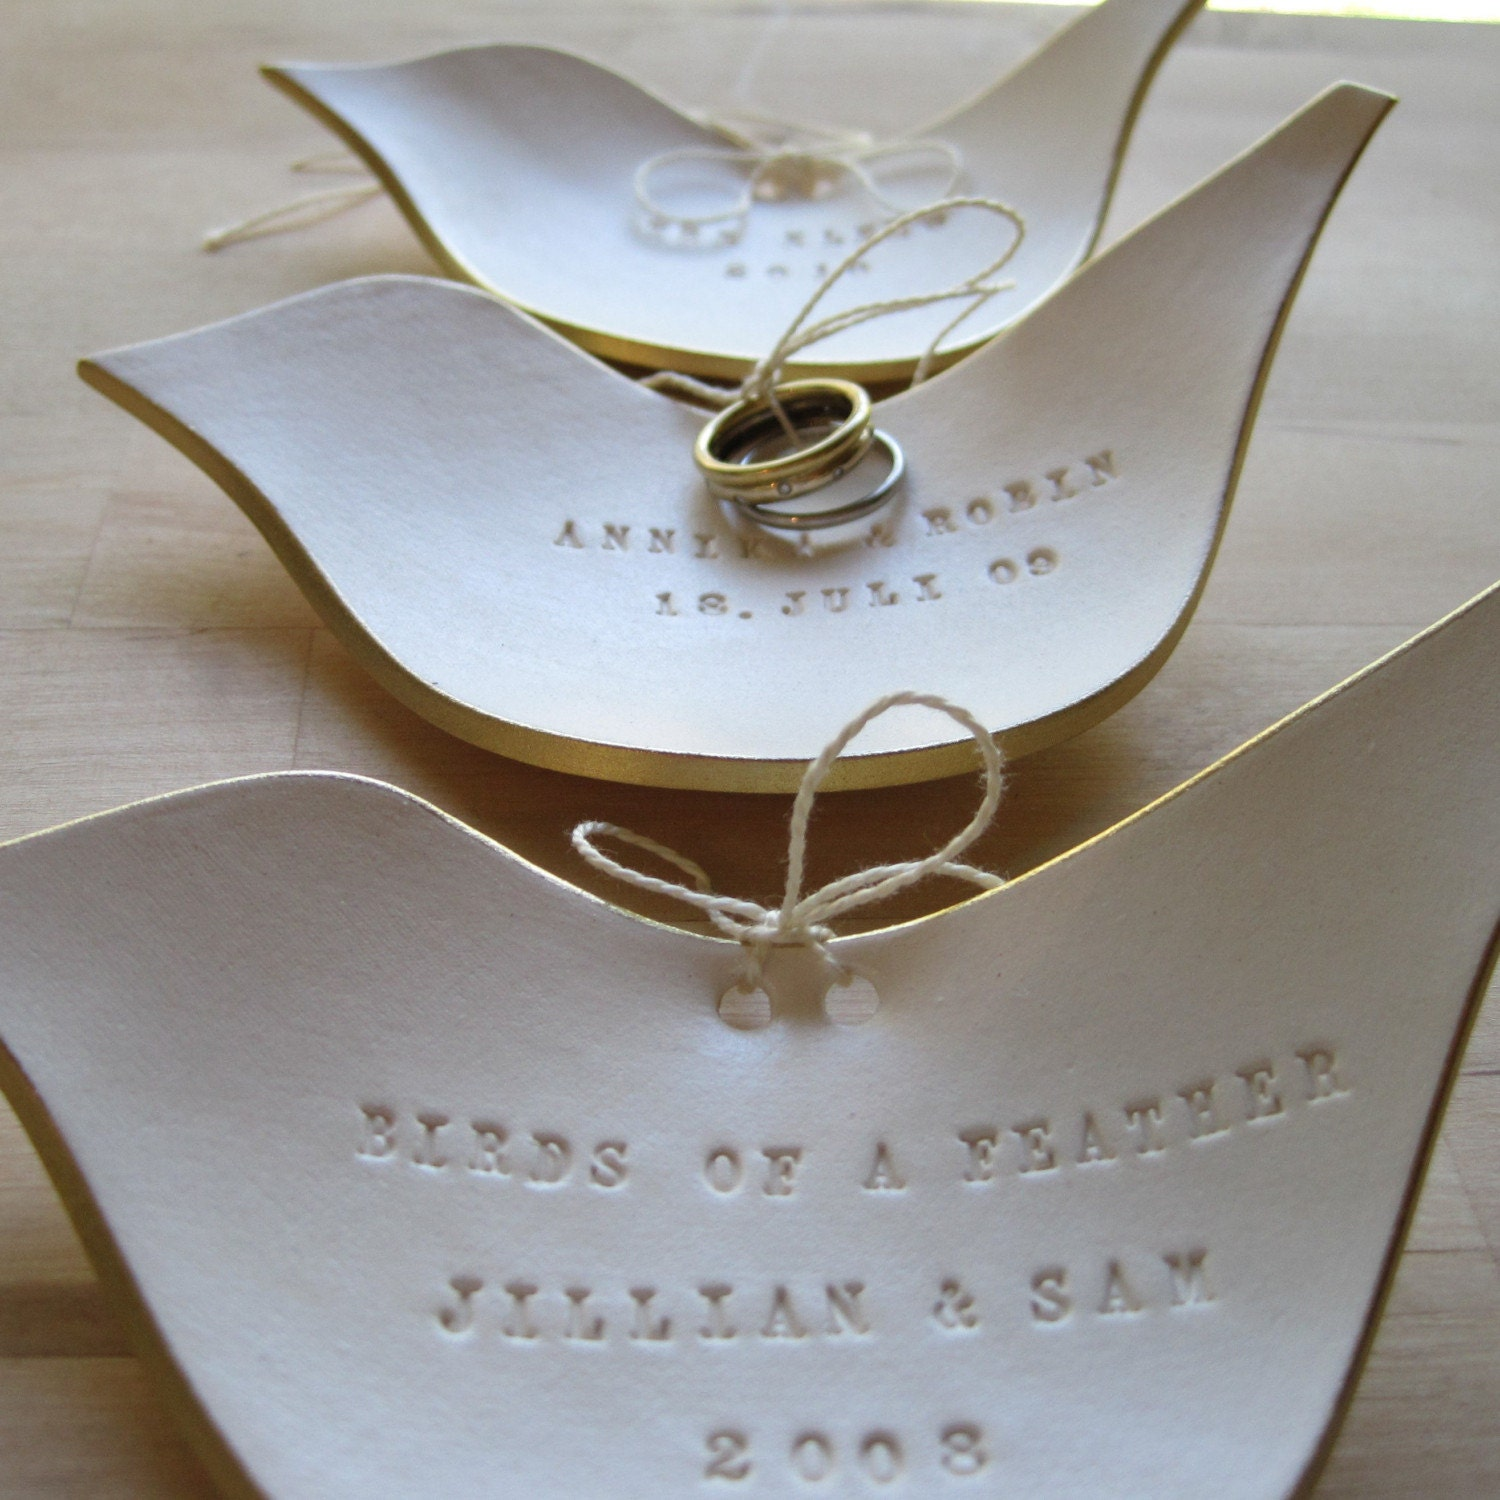 CUSTOM golden dove ring bearer bowl (TM)  with gold leaf edge- the original modern heirloom by Paloma's Nest- for wedding- commitment ceremony